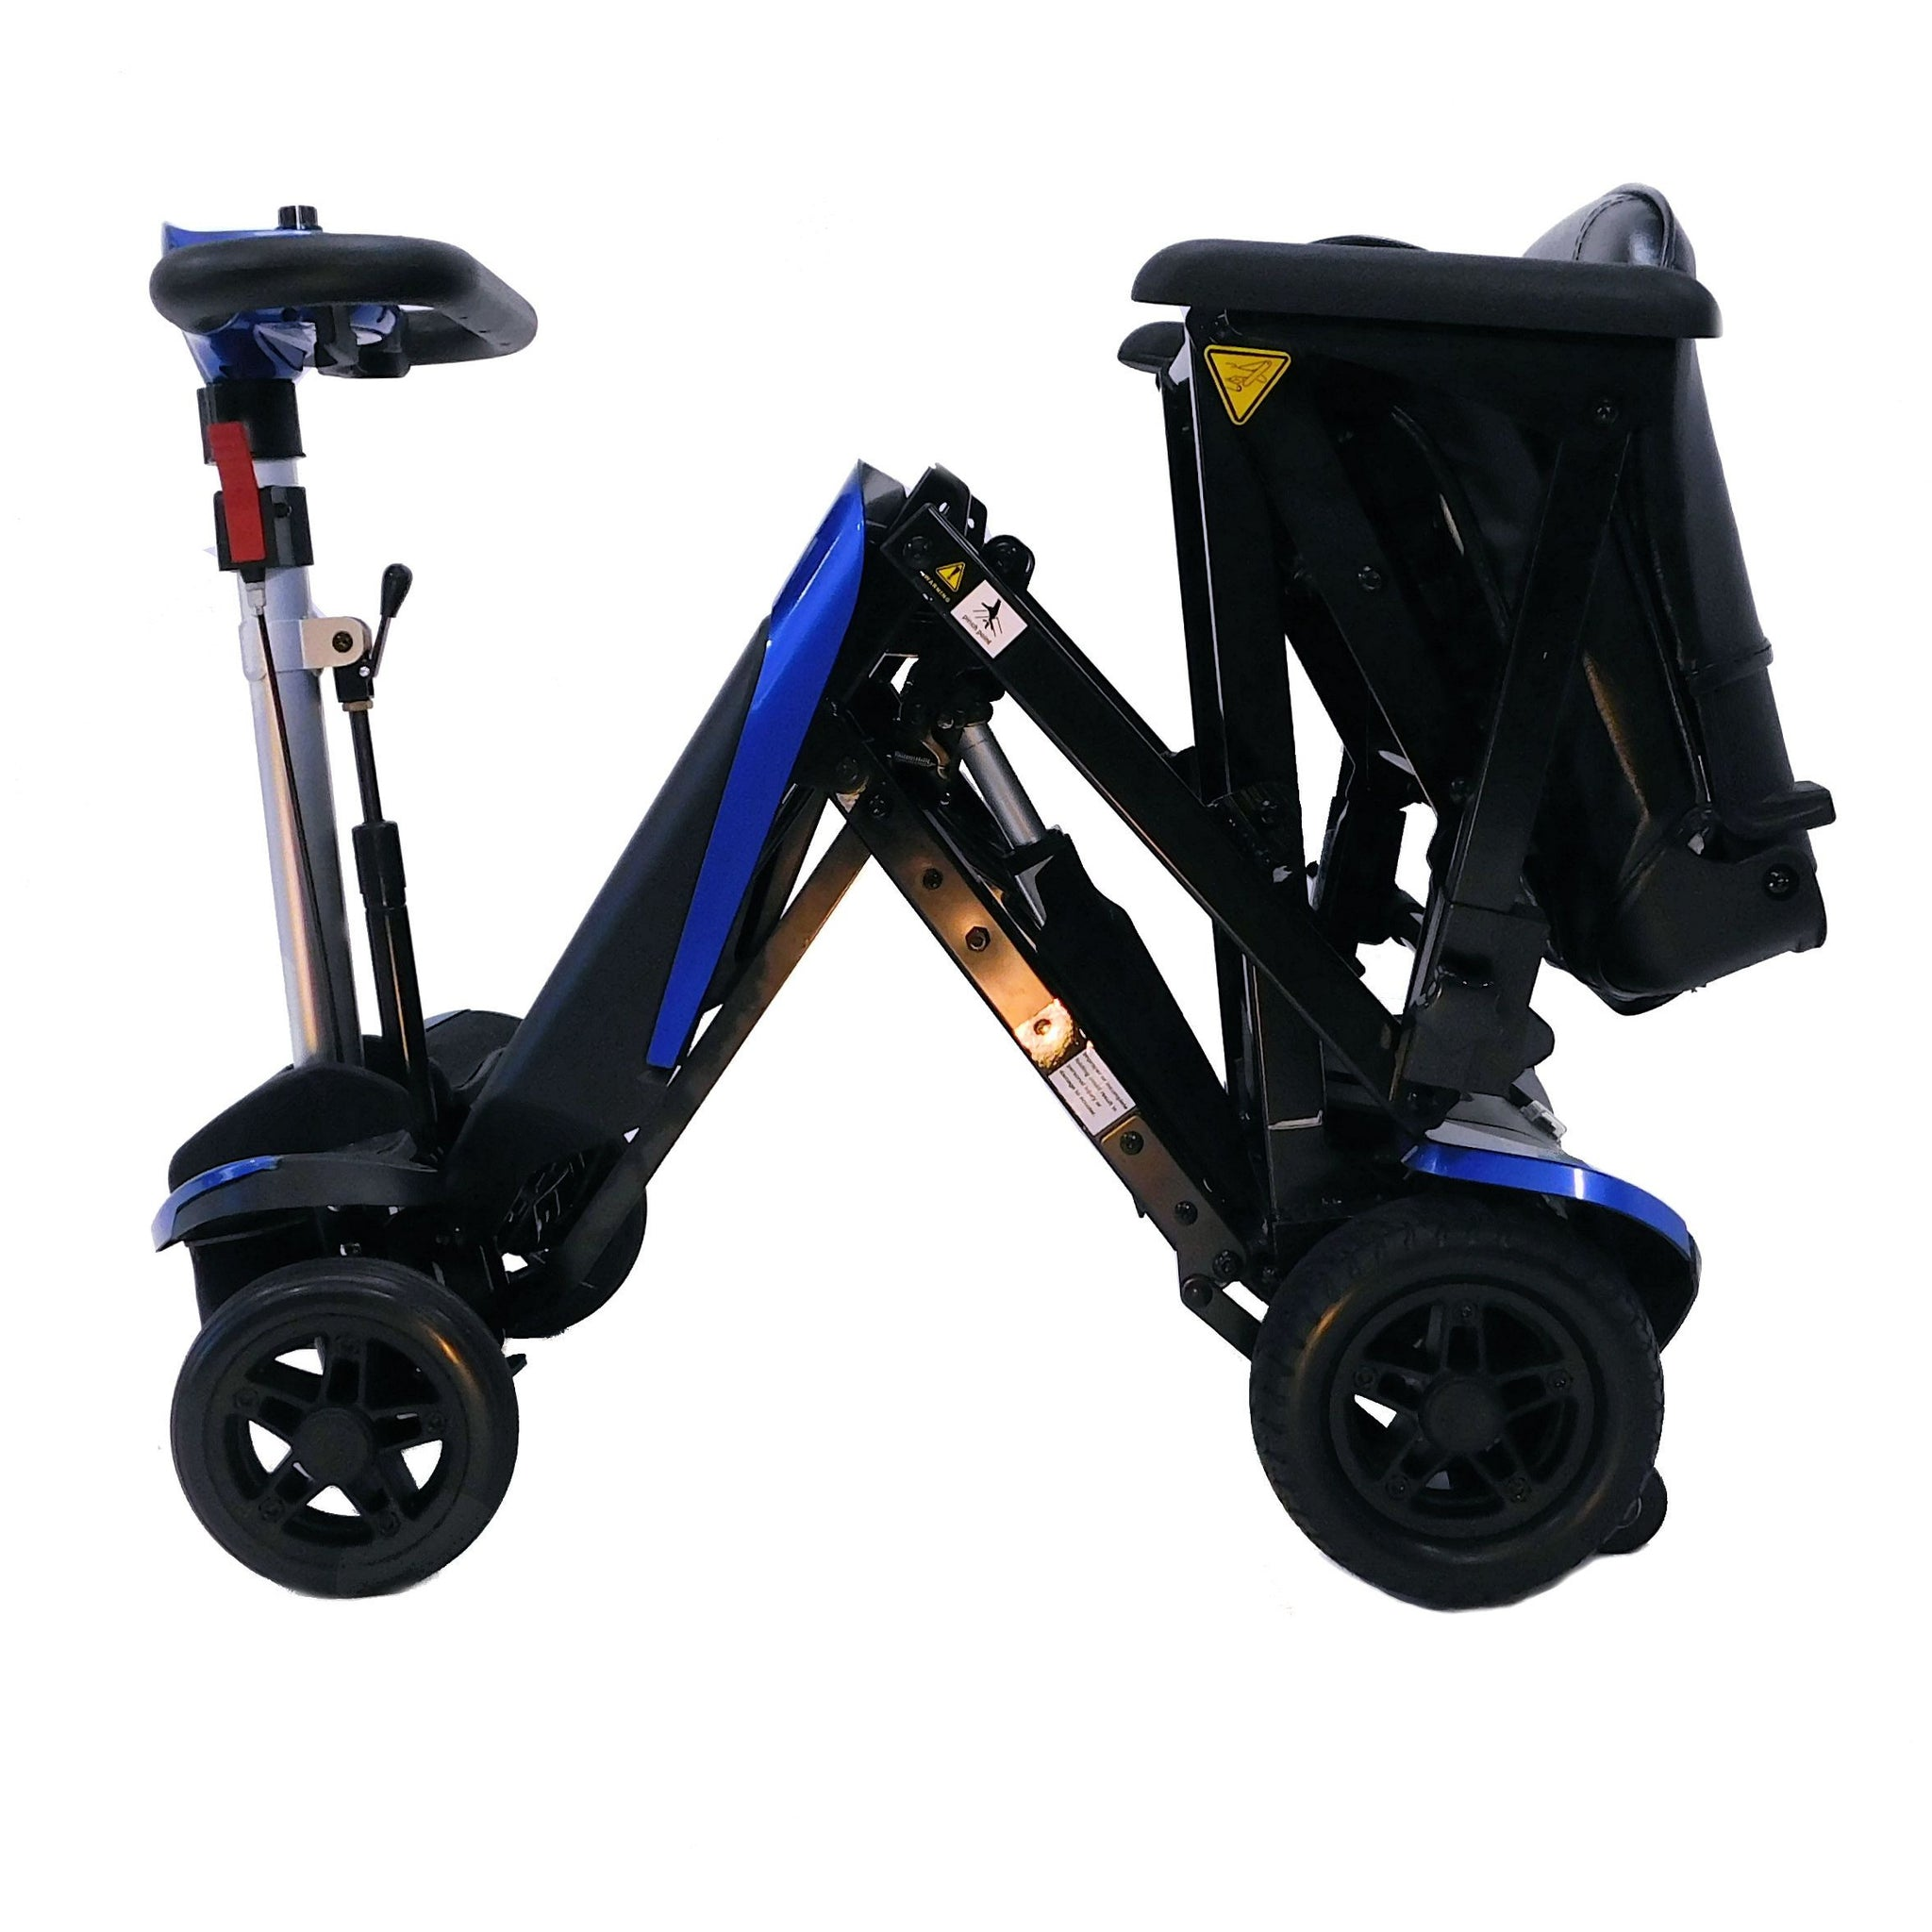 Enhance Mobility: Transformer Scooter (Automatic Folding Scooter) - S3021 - Blue Color Fold View